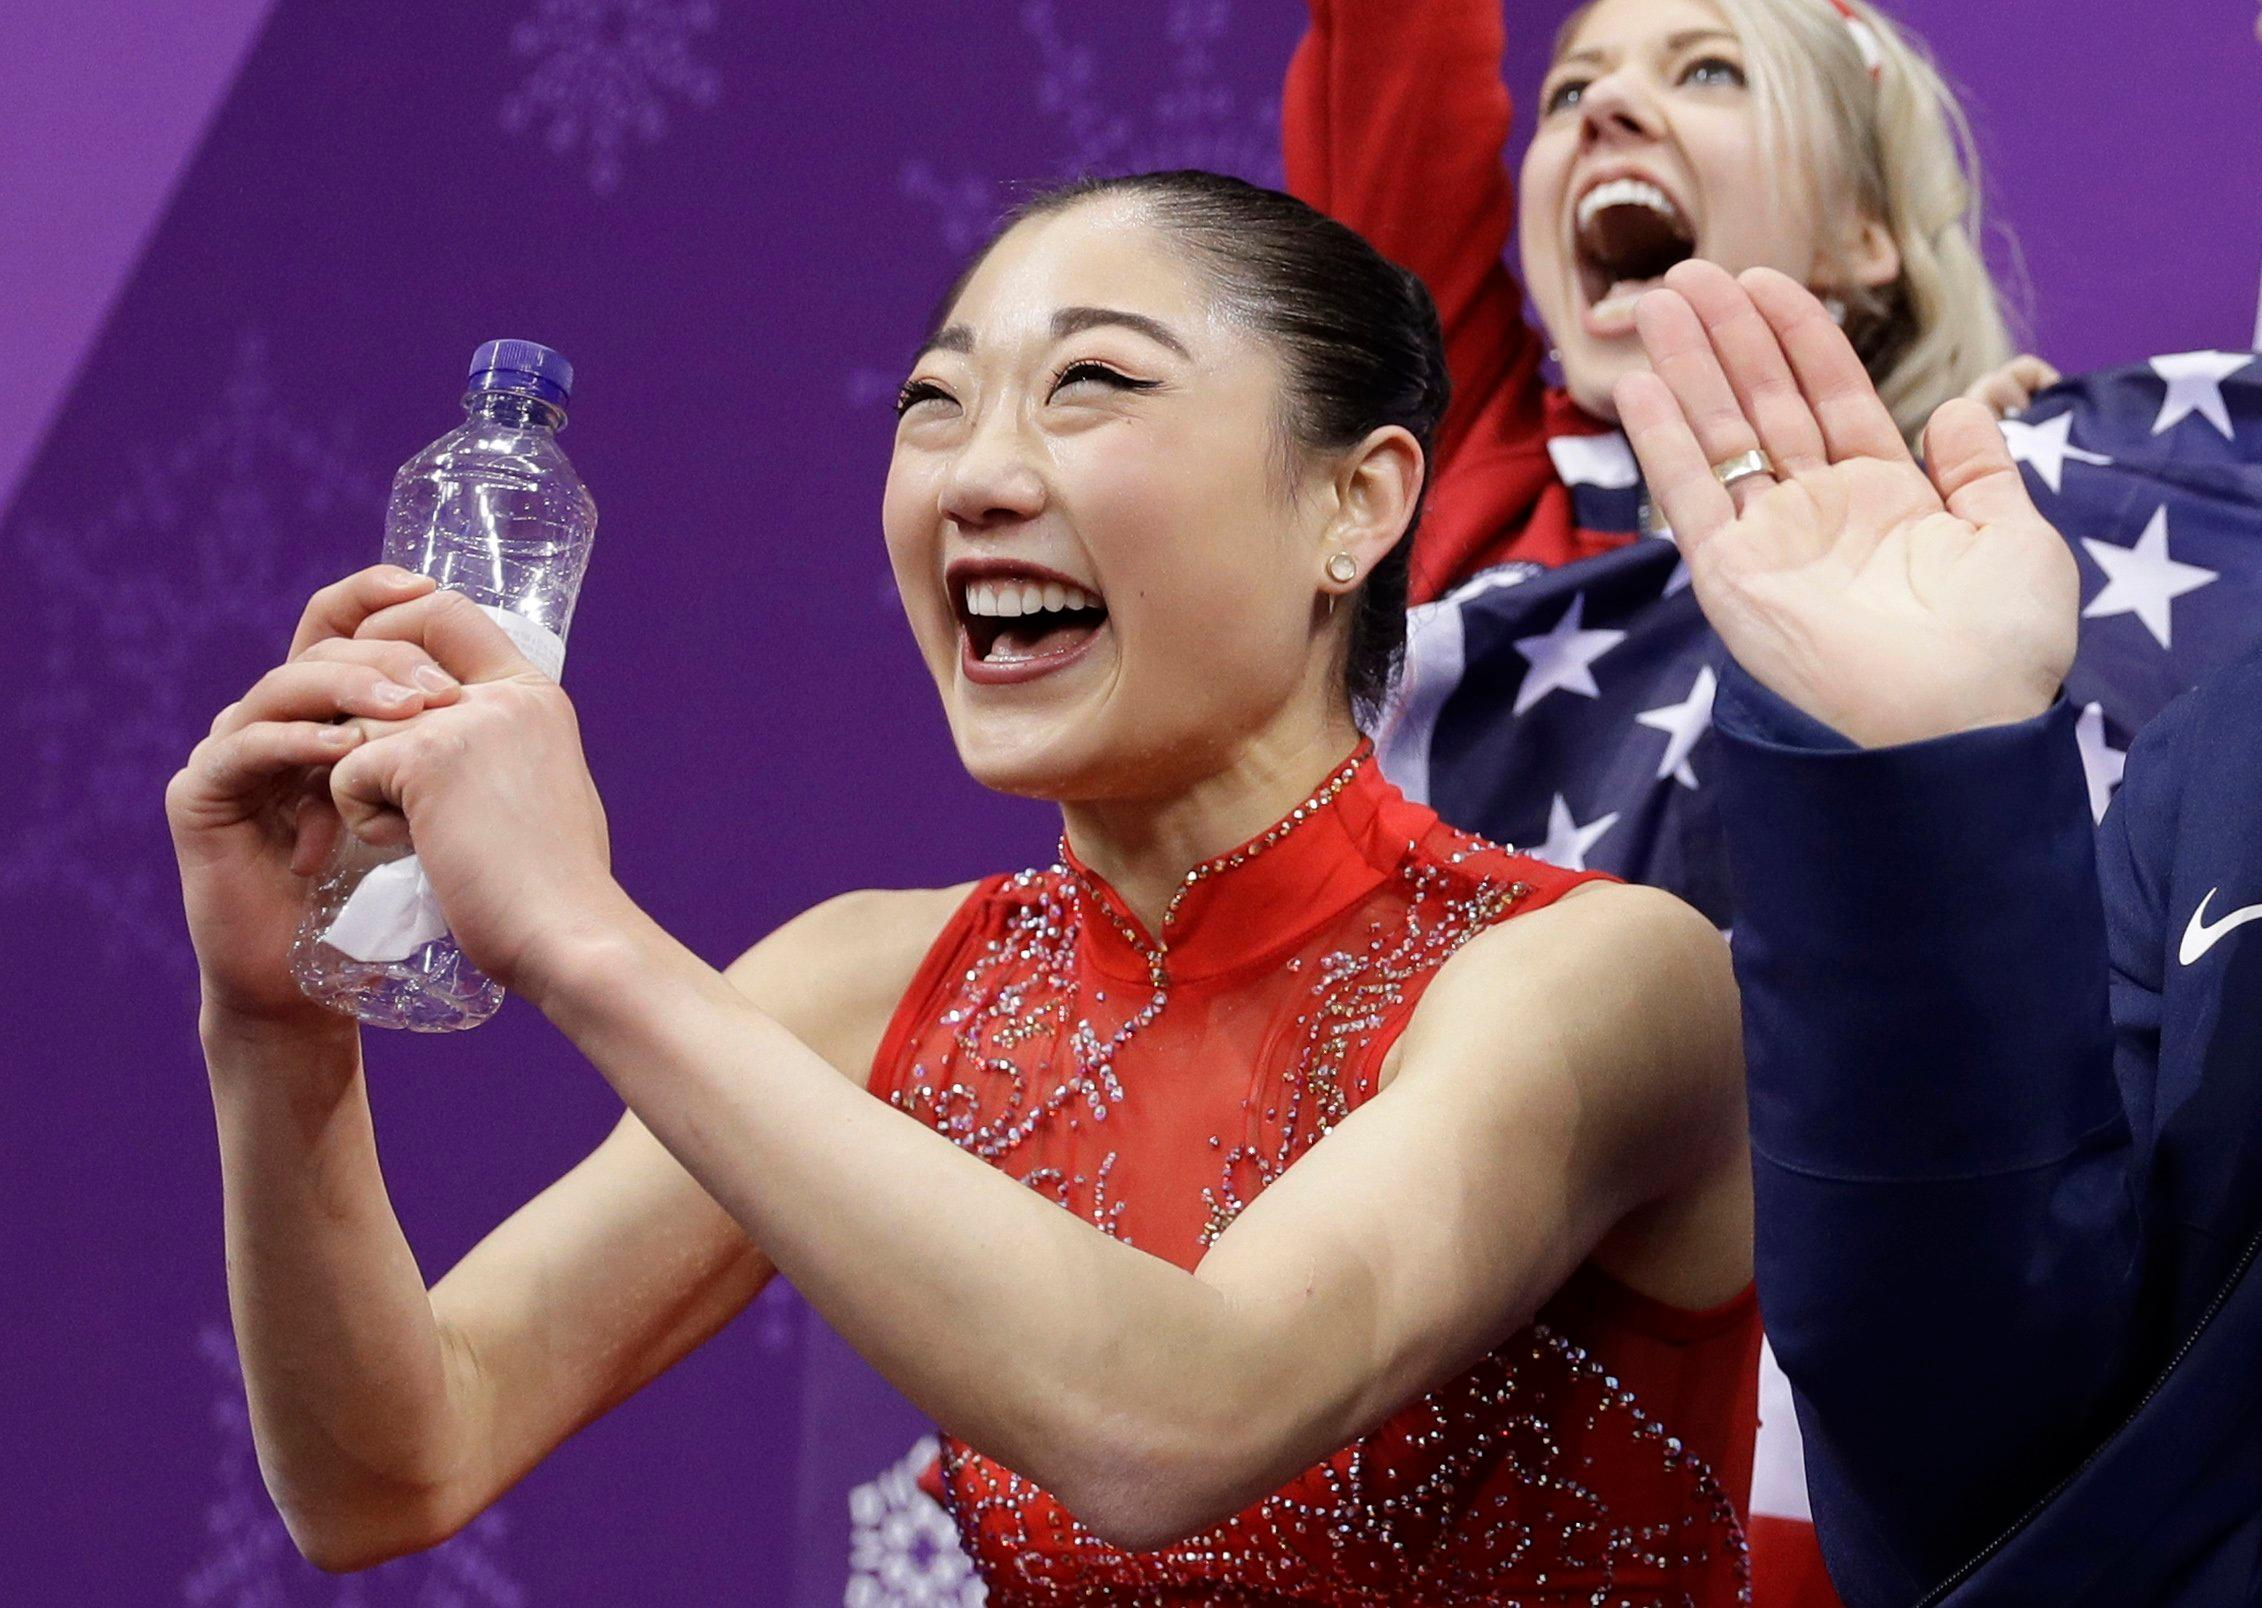 Mirai Nagasu of the United States reacts as she waits for her score in the ladies single skating free skating in the Gangneung Ice Arena at the 2018 Winter Olympics in Gangneung, South Korea, Monday, Feb. 12, 2018. (AP Photo/David J. Phillip)